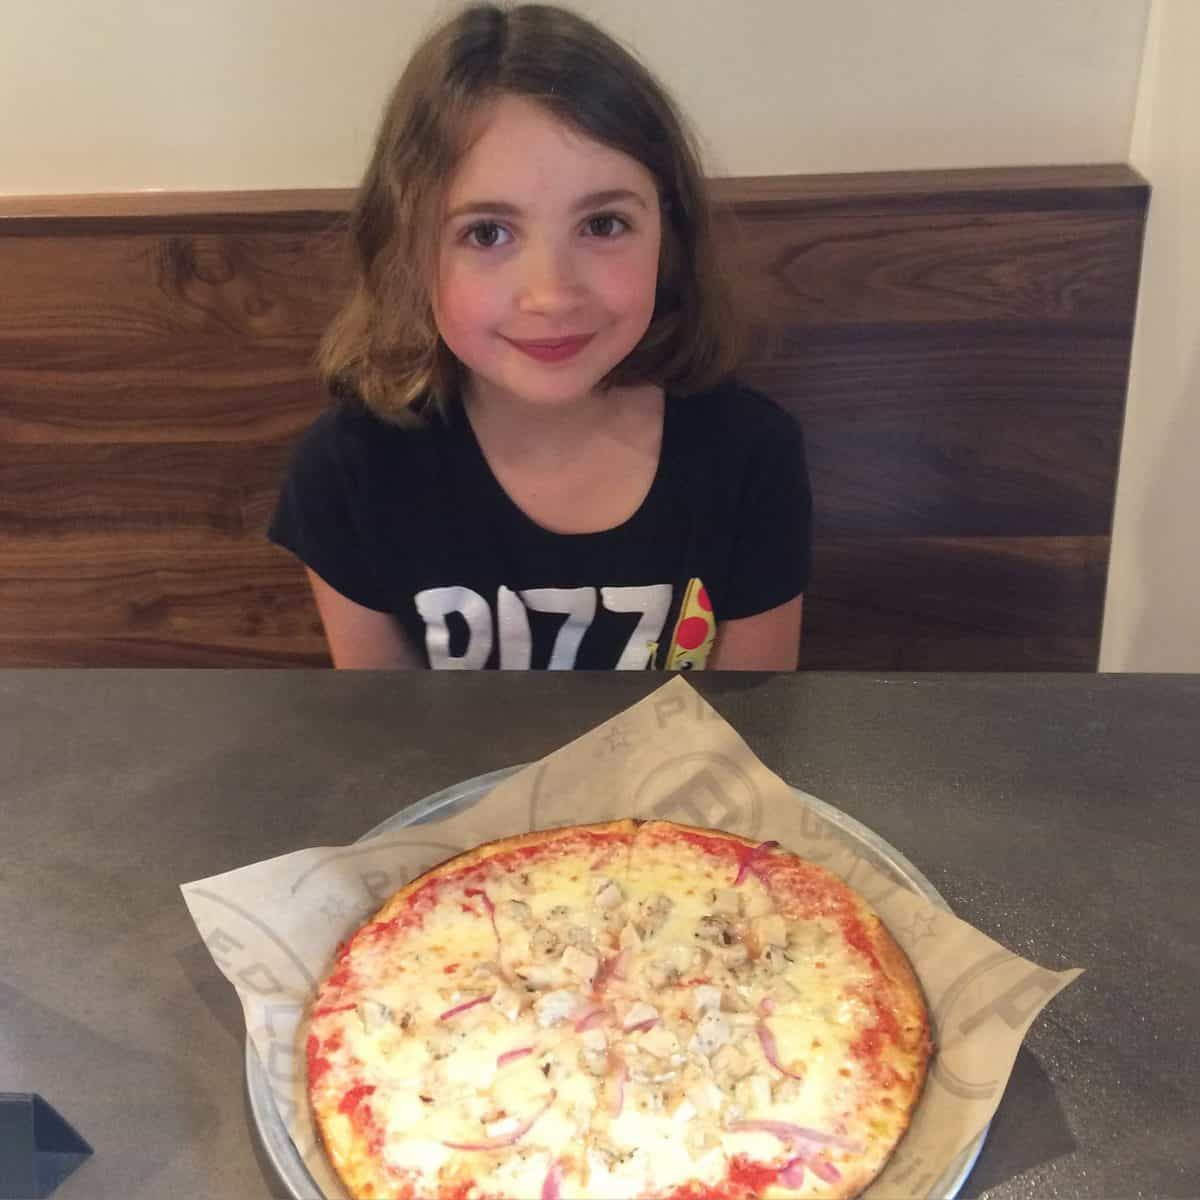 Pieology Pizza - My daughter's pizza